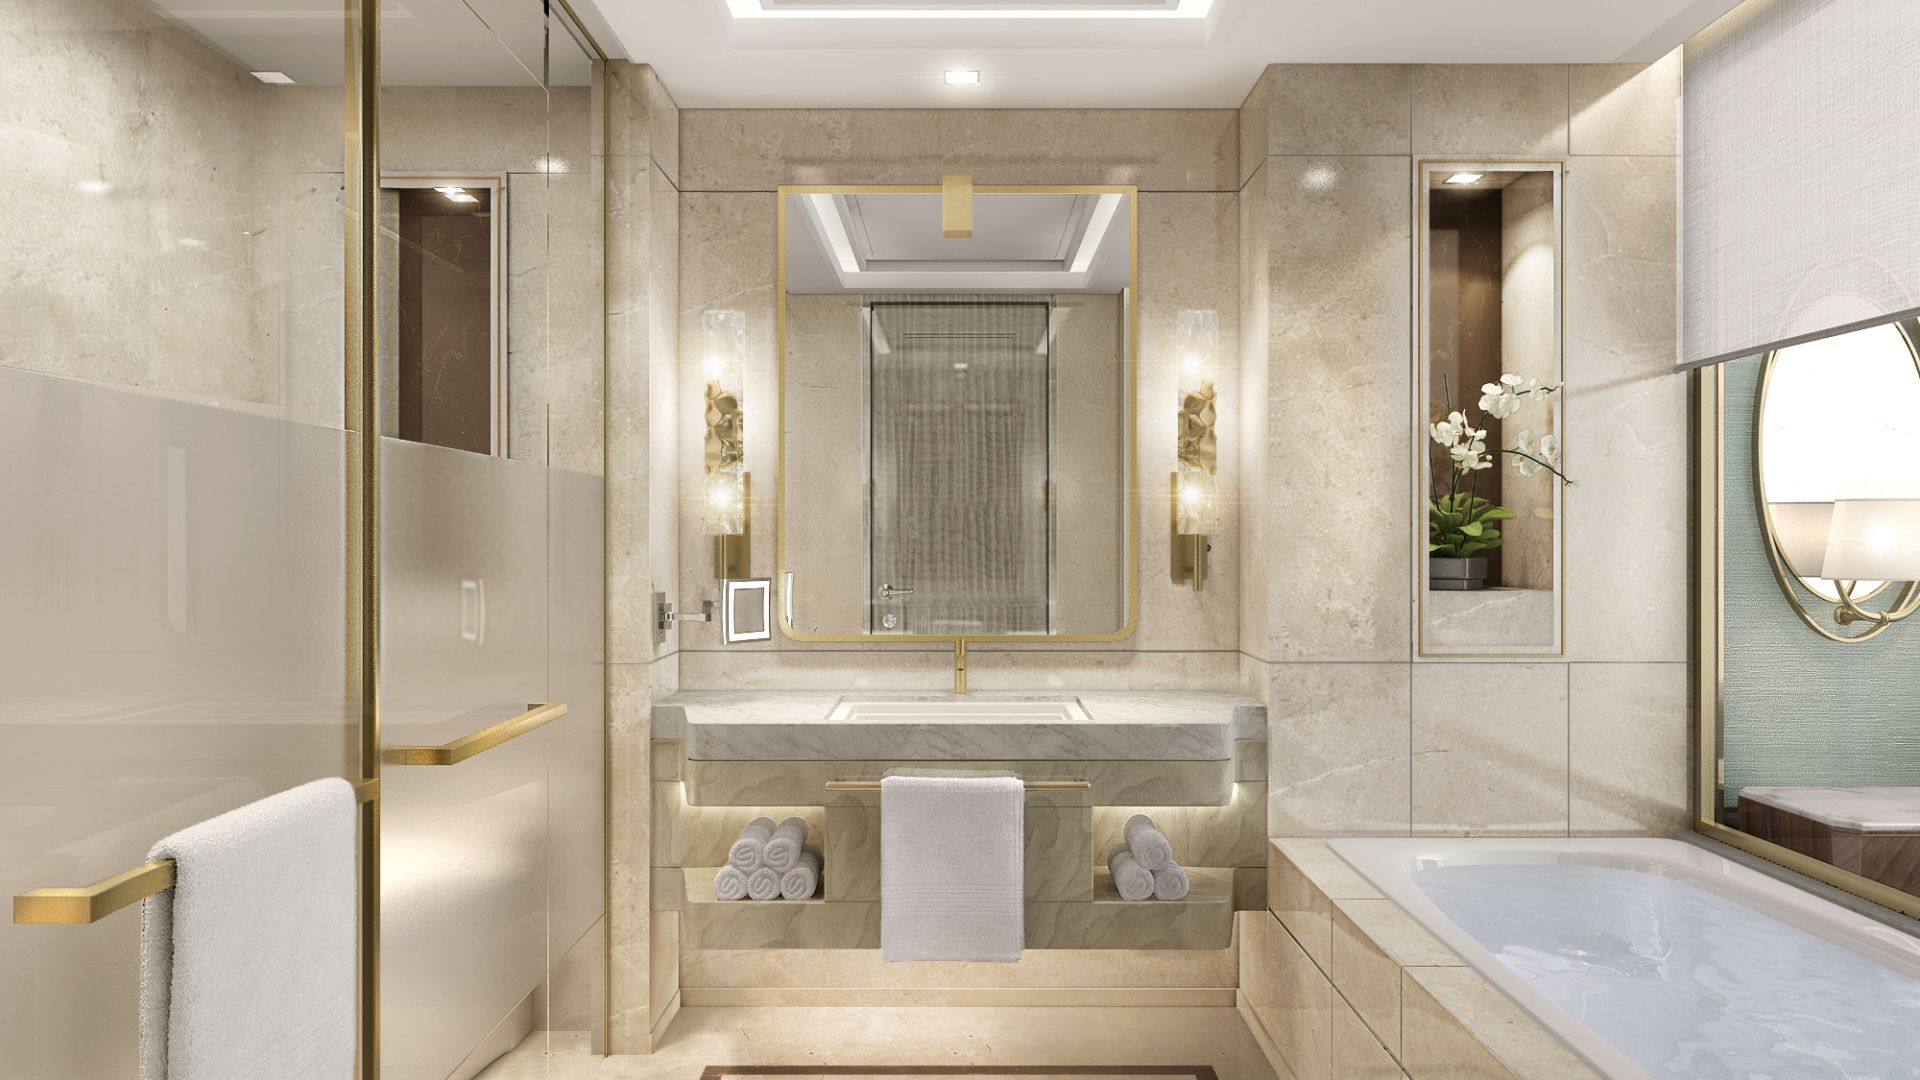 | Bathroom with Luxury Amenities